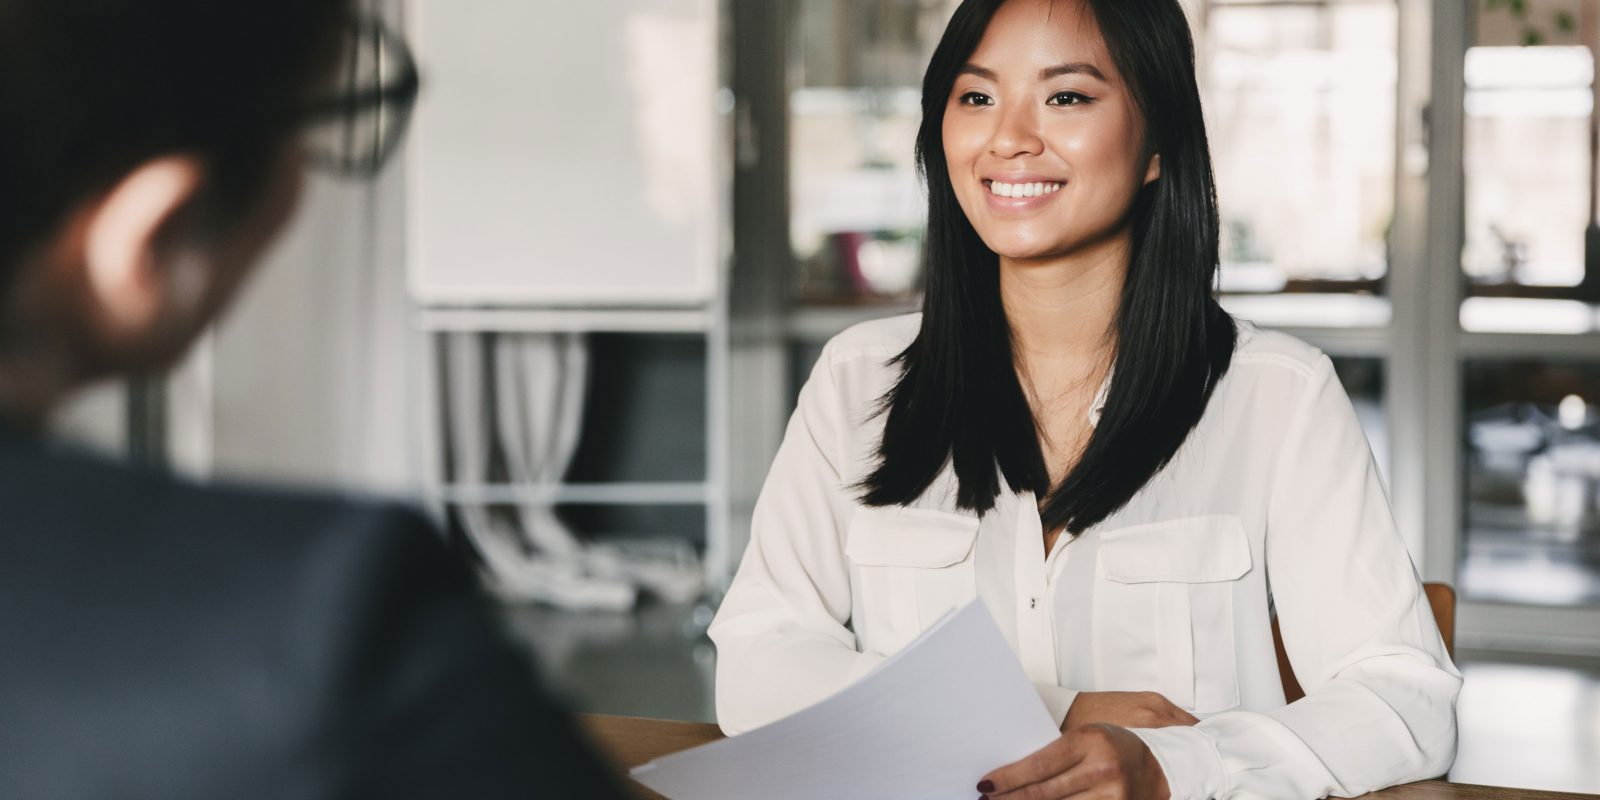 The Questions You Should Be Asking in Your Next Interview